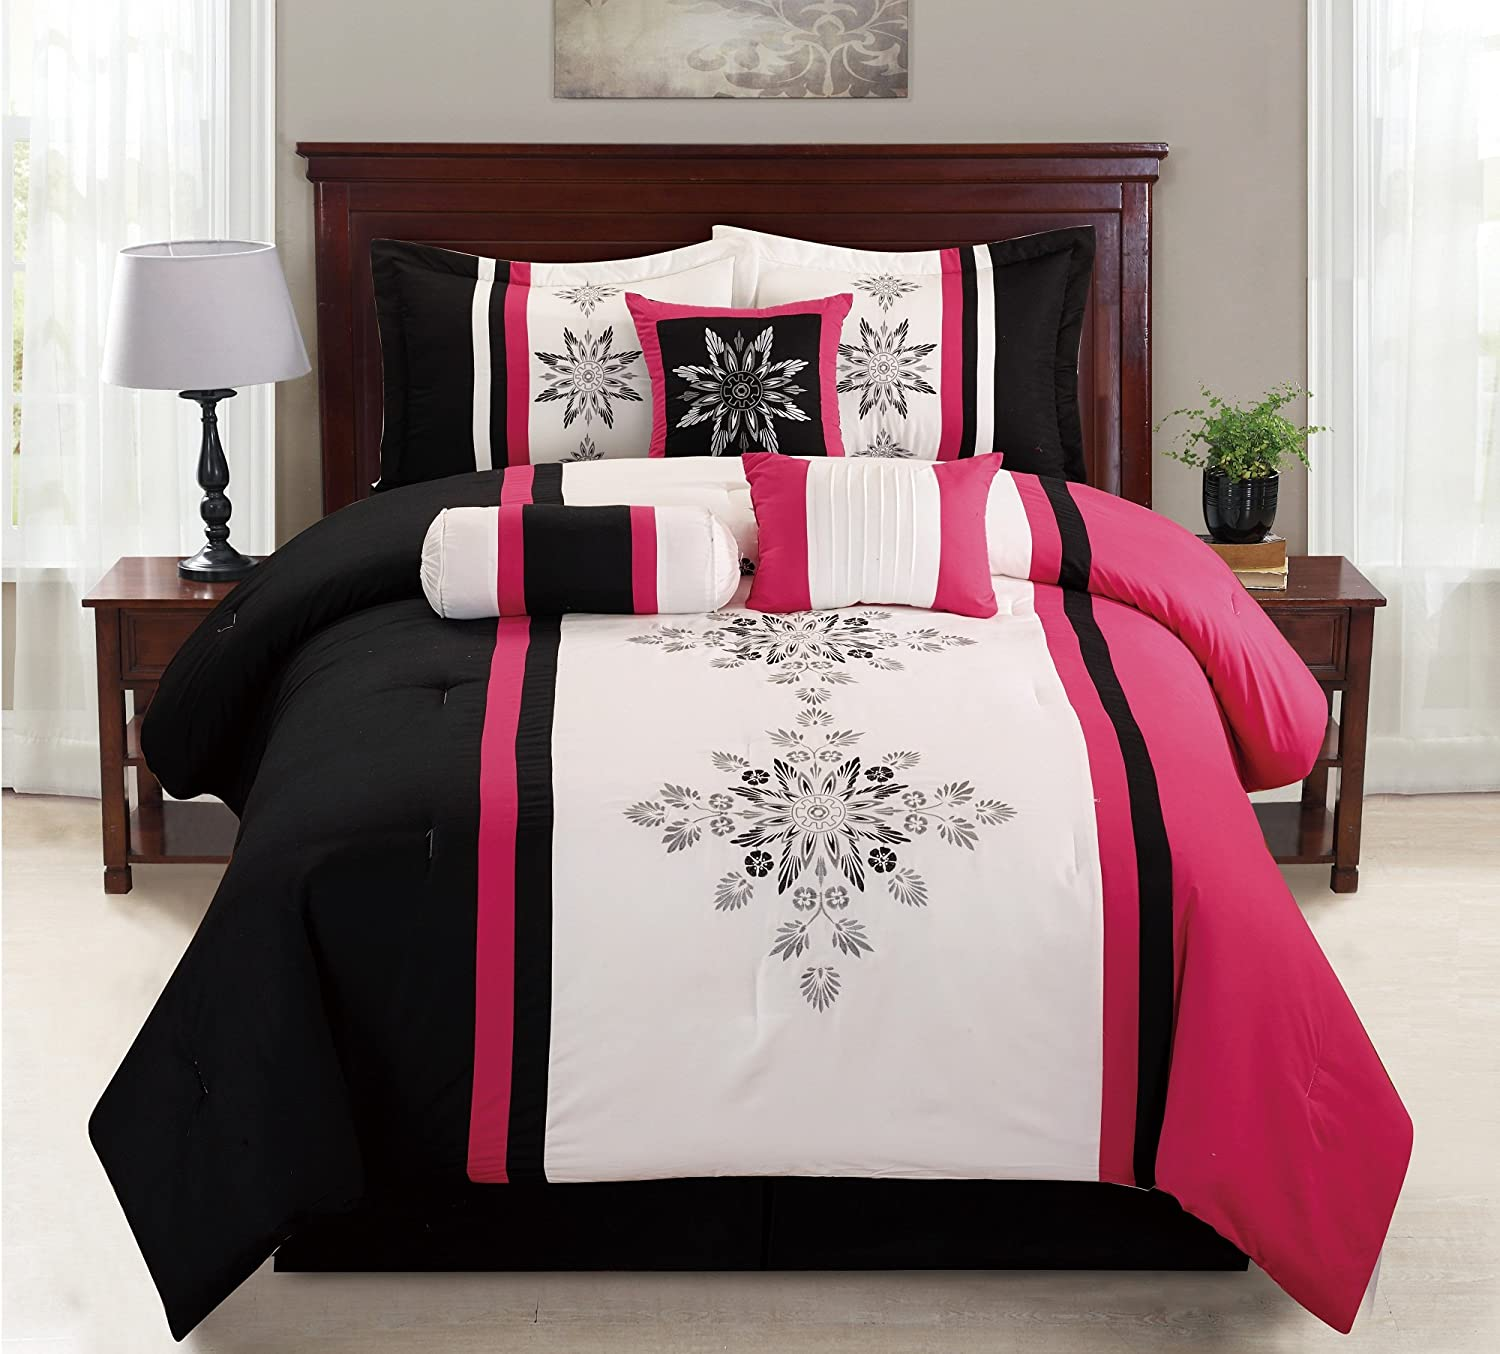 7 Piece Cotton Touch Pink & Black Embroidery Comforter Set